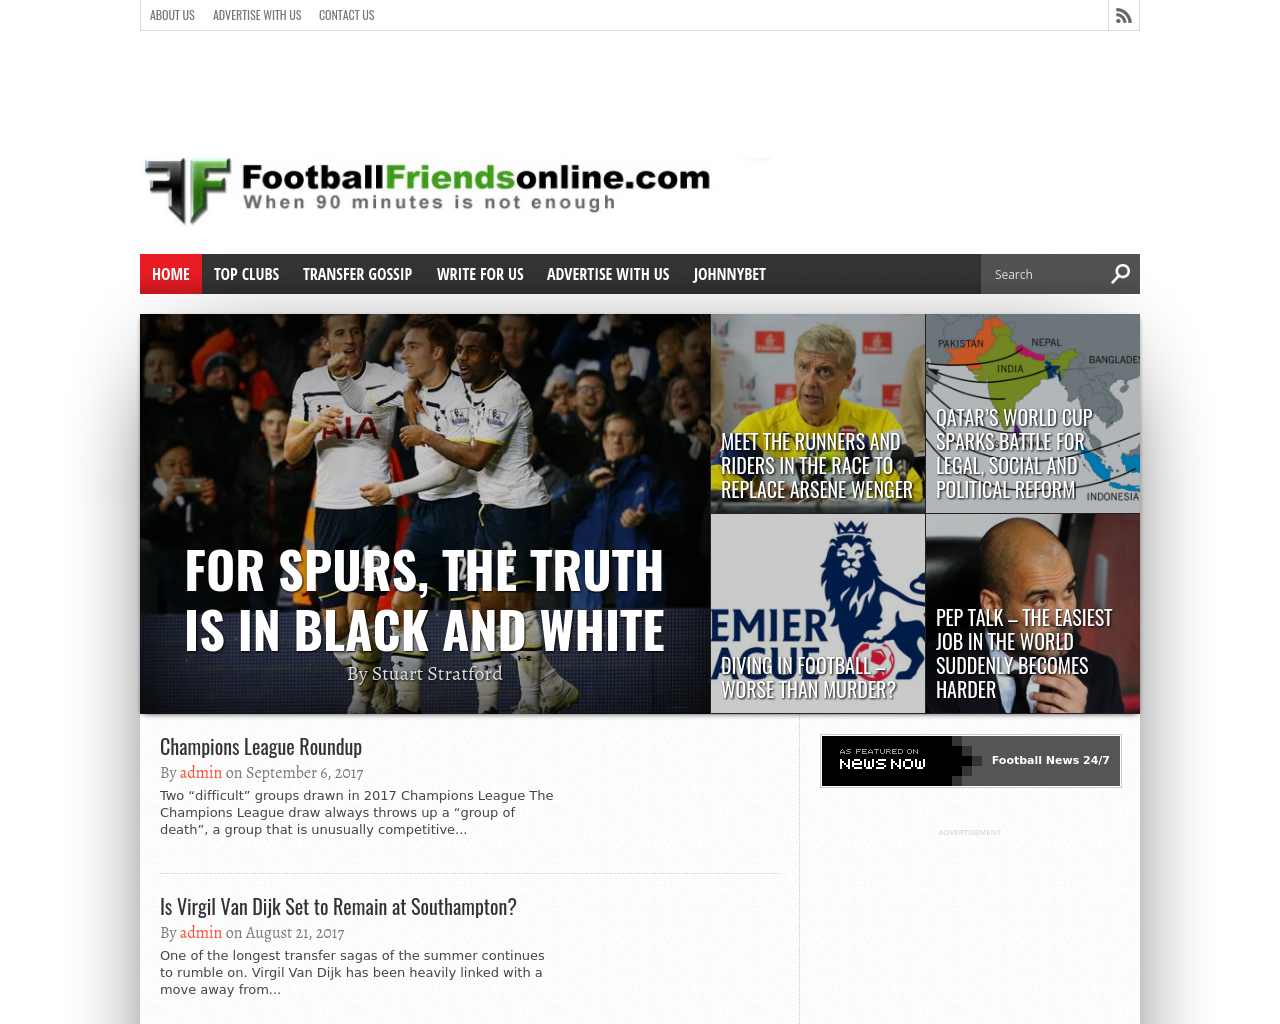 Football-Friends-Online-Advertising-Reviews-Pricing